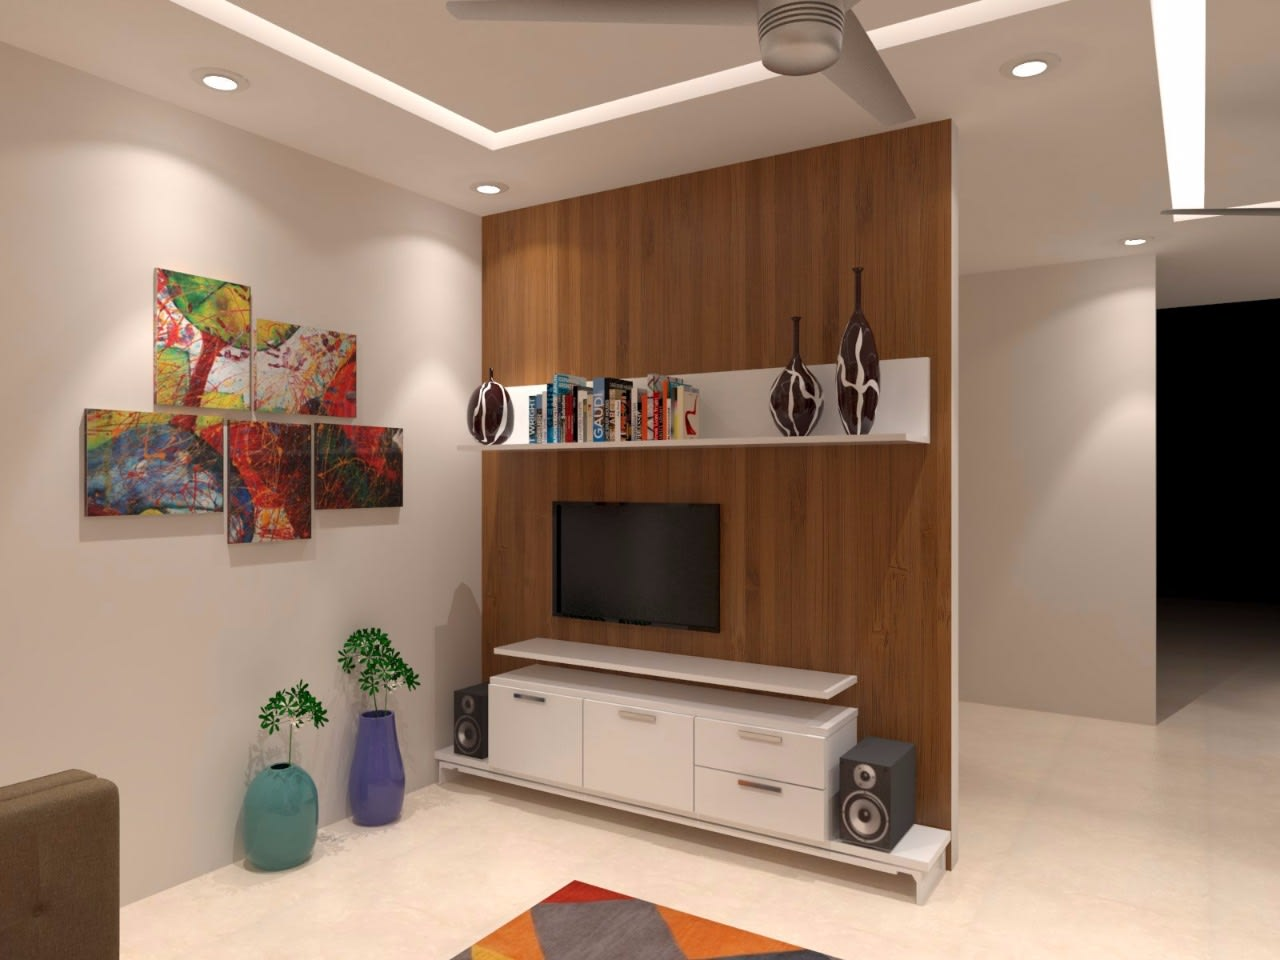 Chocolate and cream by Lalit Kumar Modern | Interior Design Photos & Ideas